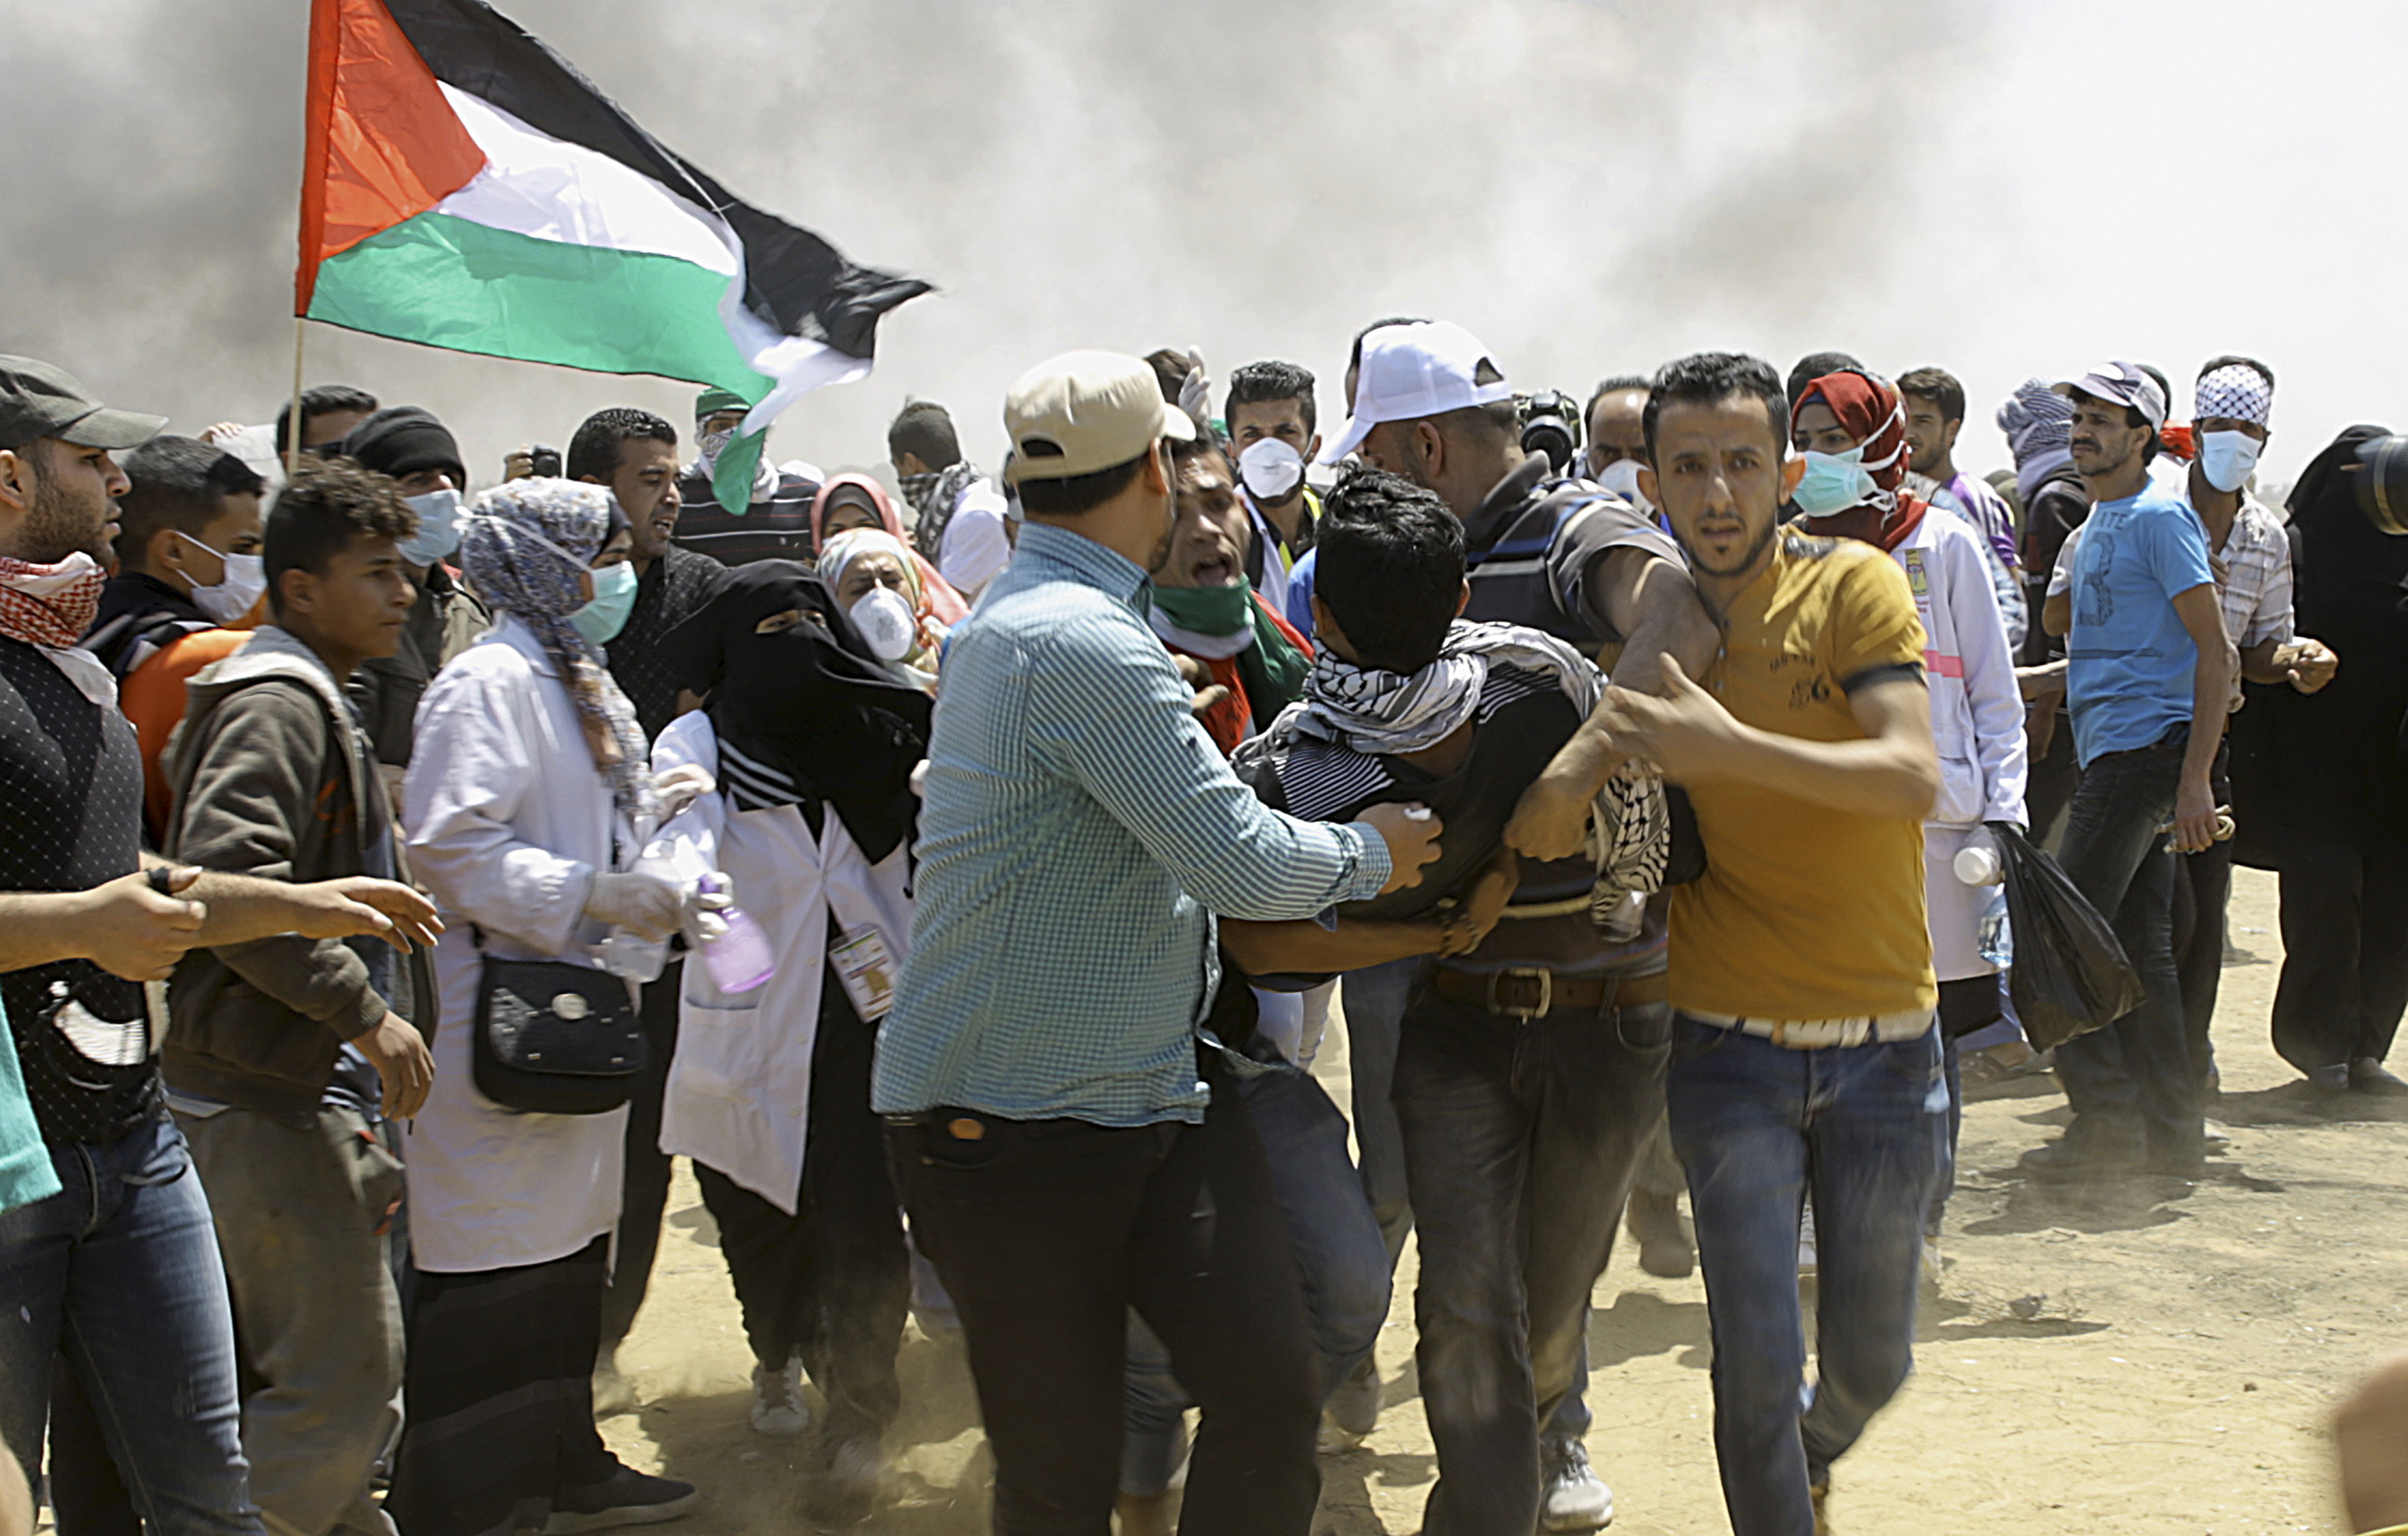 Palestinian protesters evacuate a wounded youth near the Israeli border fence, east of Khan Younis, in the Gaza Strip, May 14, 2018.